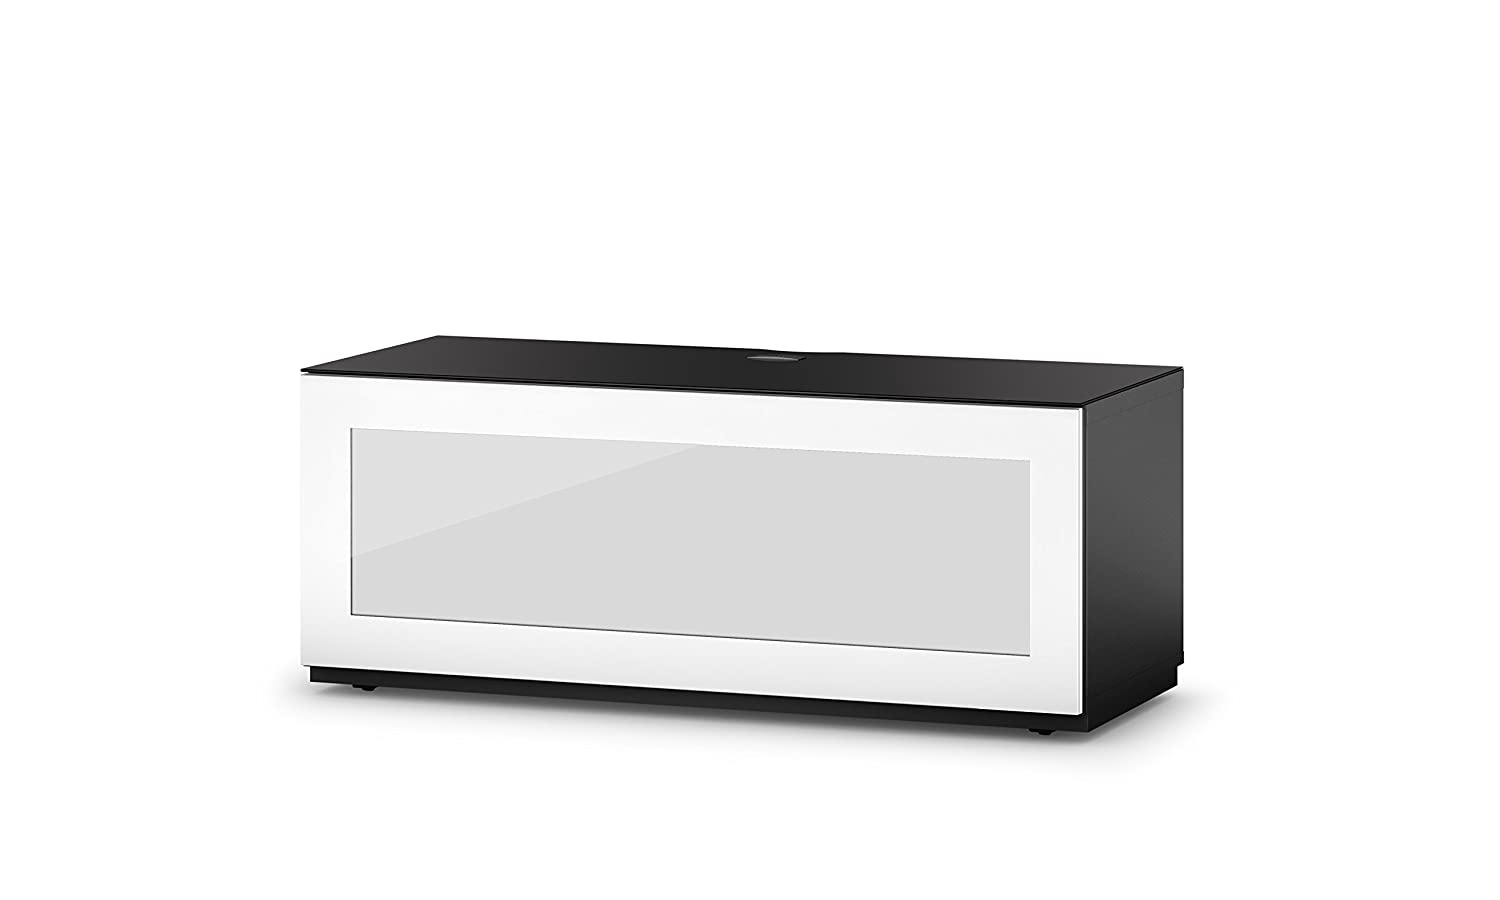 Sonorous Sta 110i Blk Wht Bw H Ngende Meuble Tv Bas Avec Socle  # Meuble Tv Infrarouge